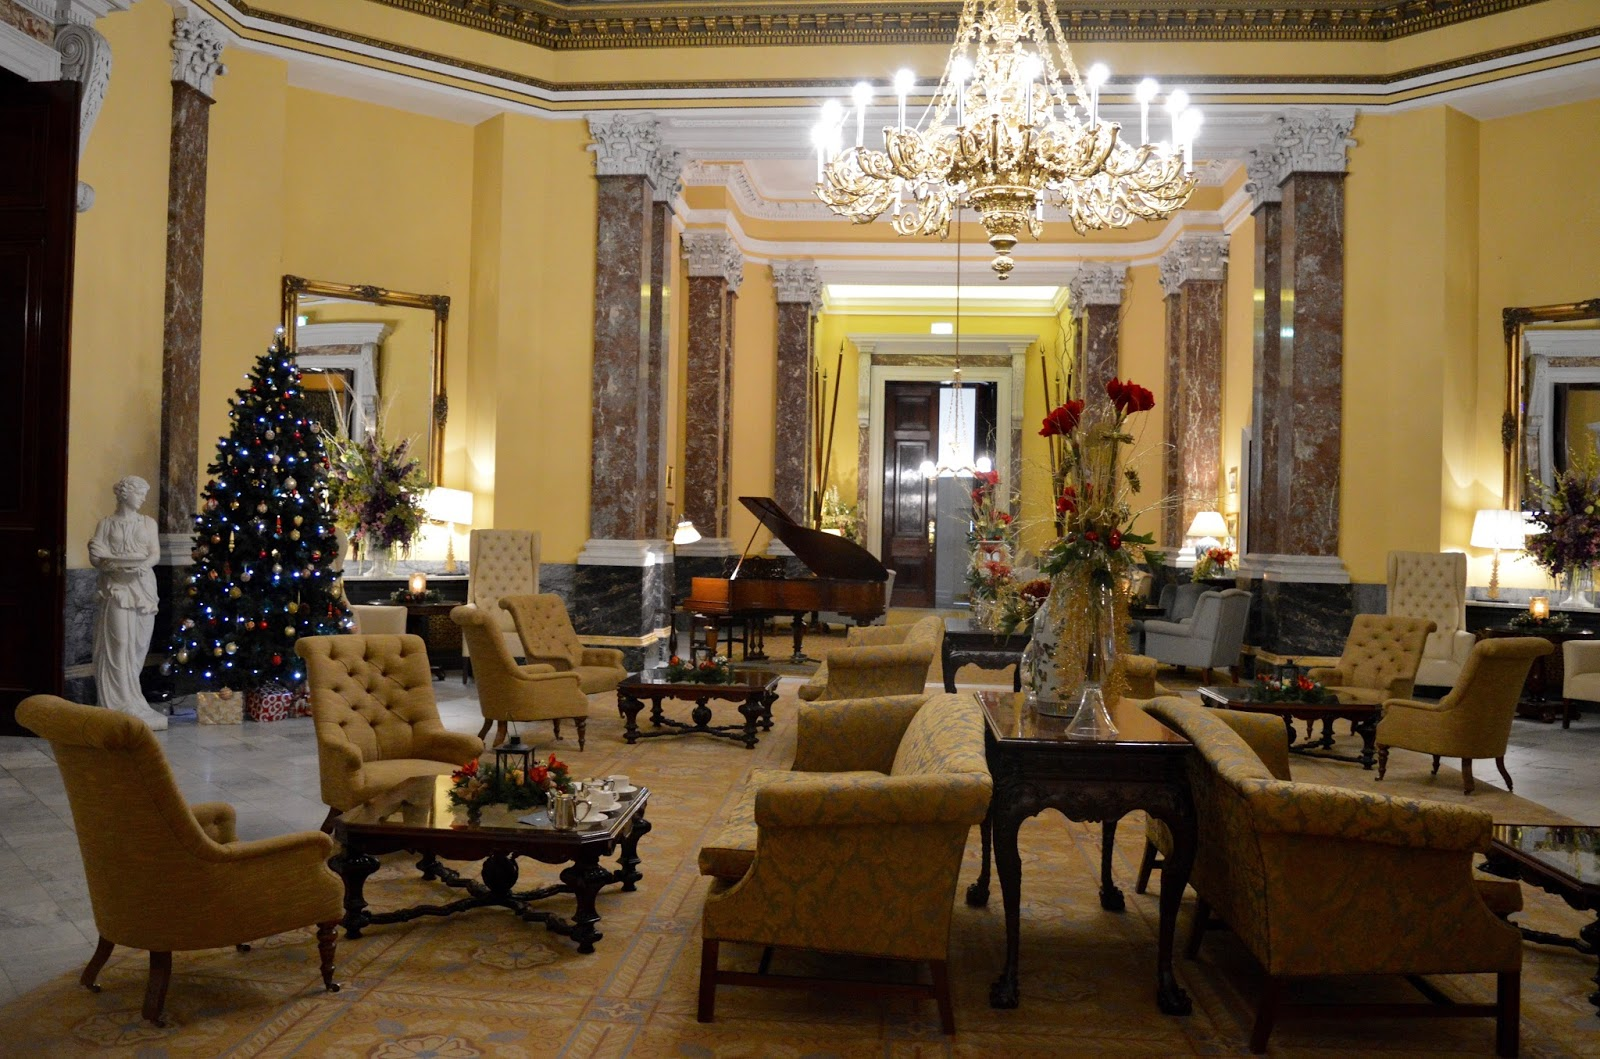 Afternoon tea at Wynyard Hall (with kids) - A Review - Wynyard Hall lobby at Christmas